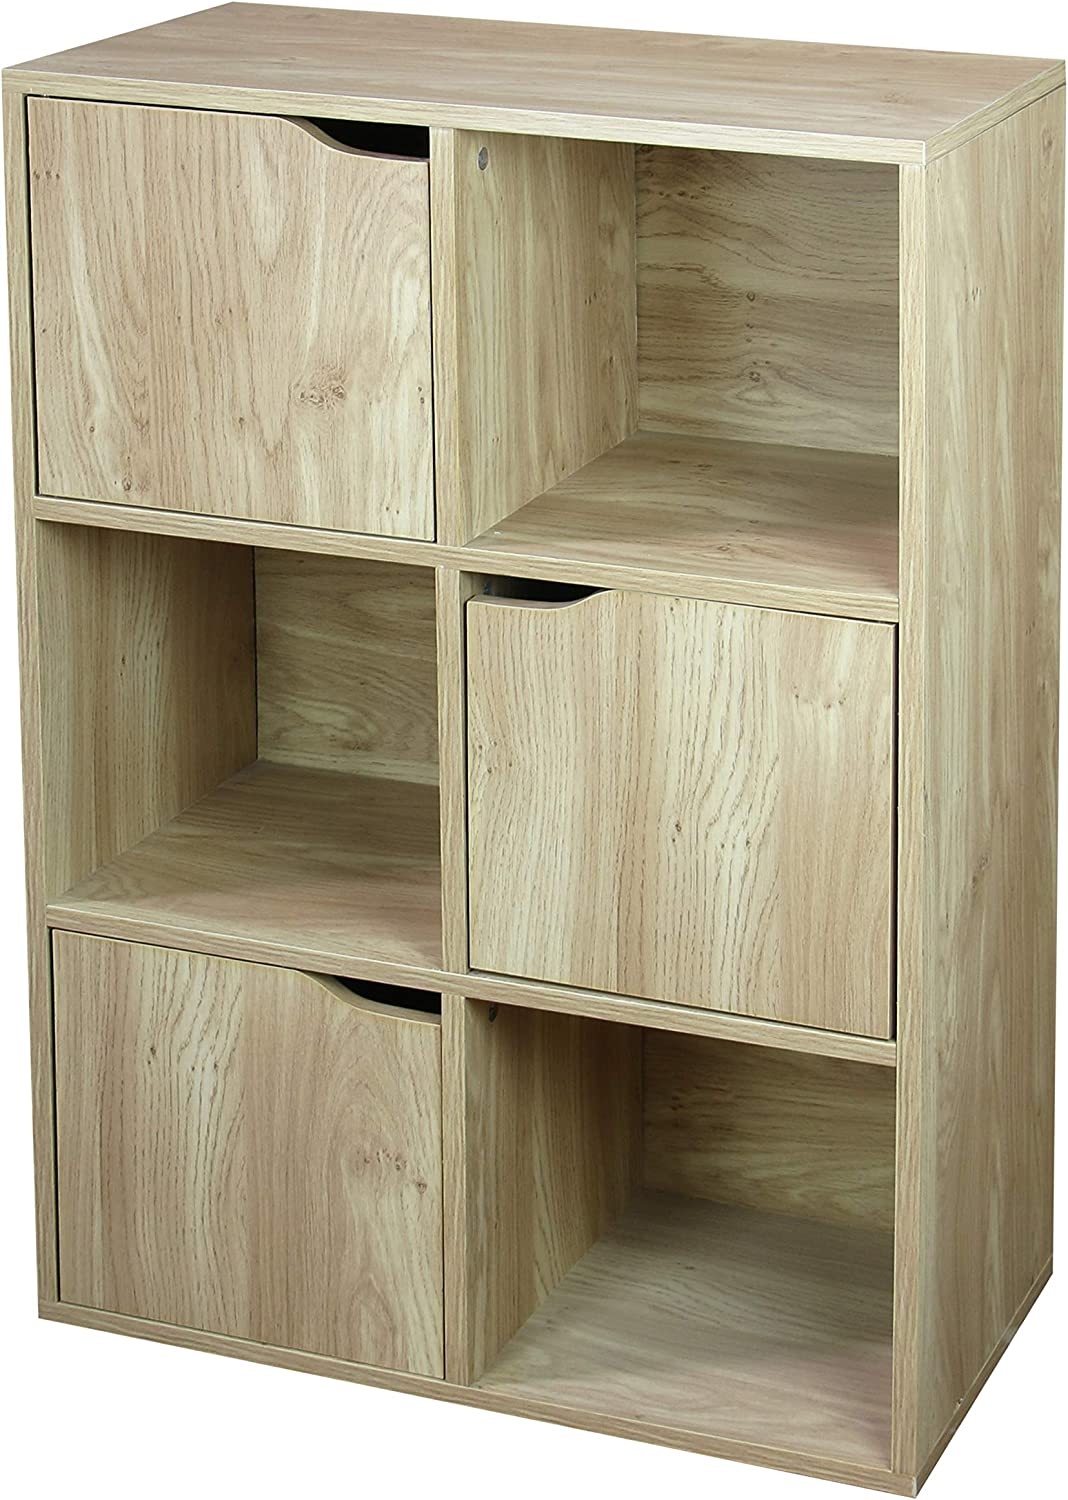 Home Basics Cube Shelves Natural Wood Shelf with Doors, Room, Clothes Storage, Home Décor, Bookshelf, Toy Organizer Home & Office – 3 Open 3 Cabinet-Style (6 C